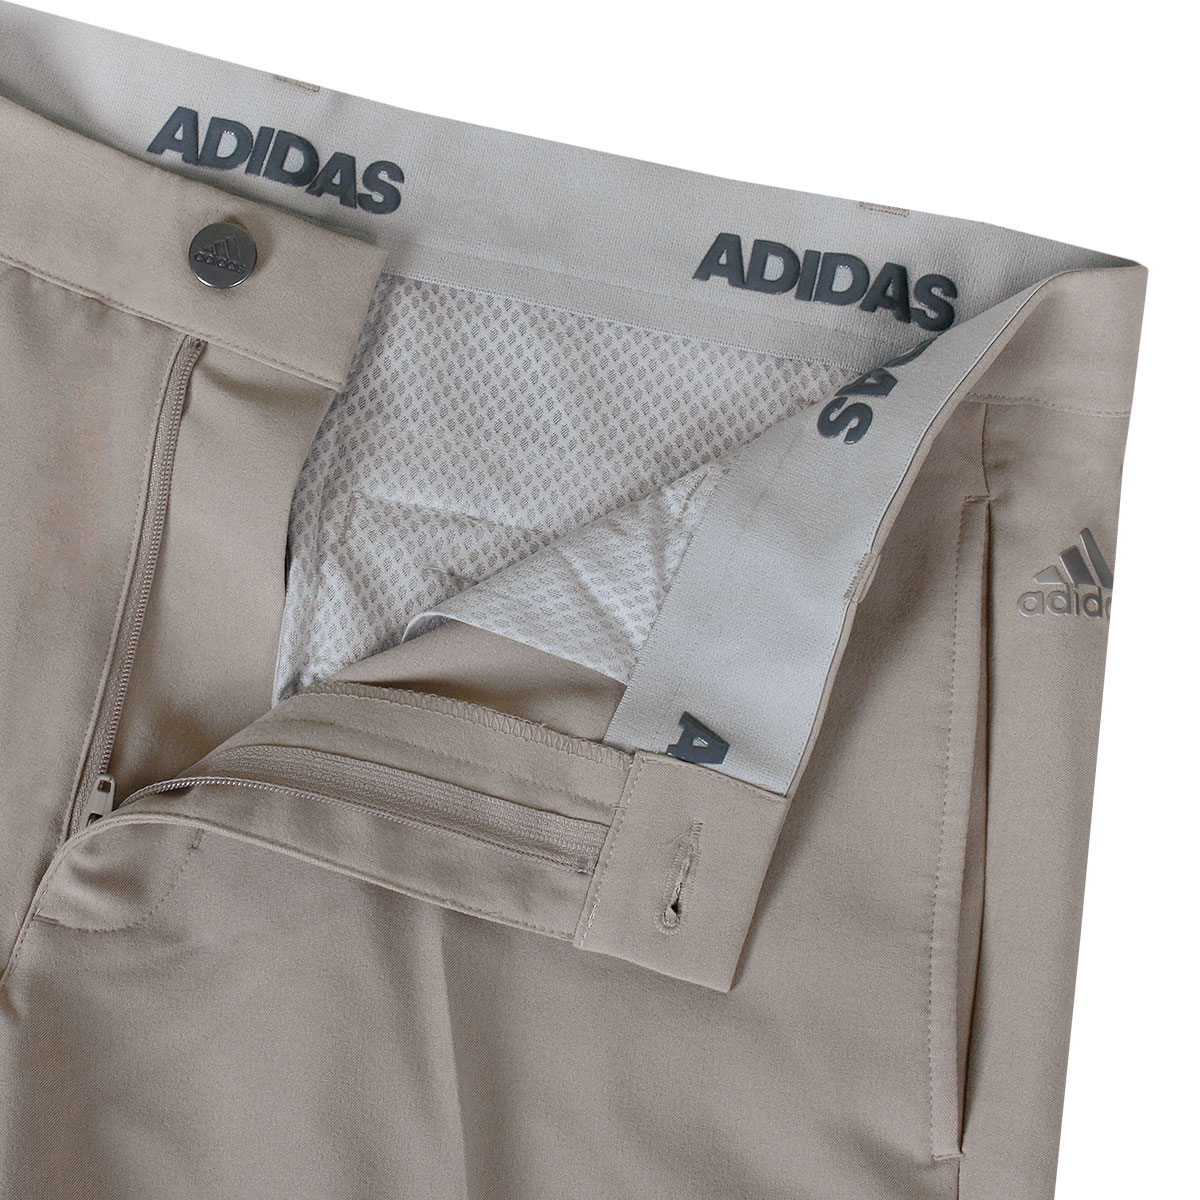 adidas-Golf-Mens-Ultimate-3-Stripes-Stretch-Pant-Trousers-44-OFF-RRP Indexbild 34